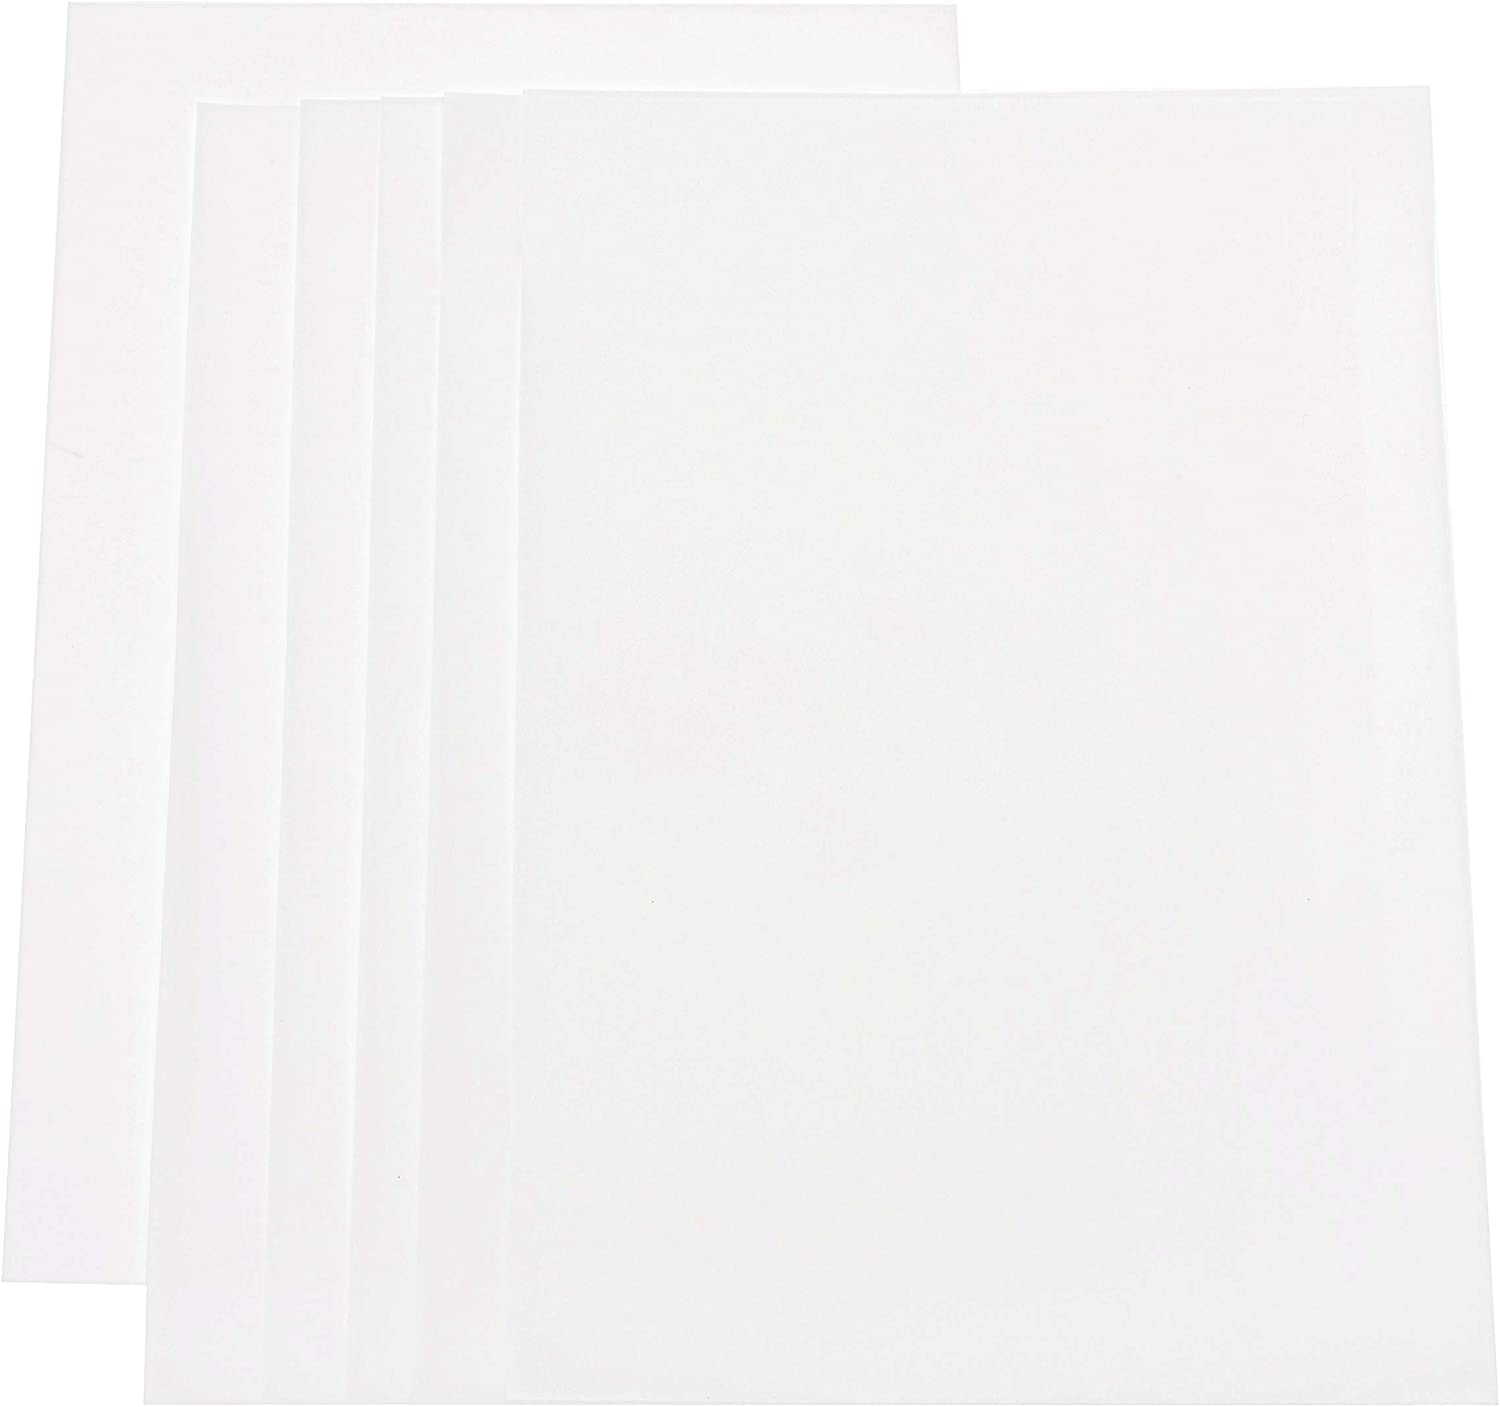 Bulk 100 Pcs A4 Size 8-1//4 x 11-3//4 KARRES Vellum Paper White Translucent Art Sketching and Tracing Paper